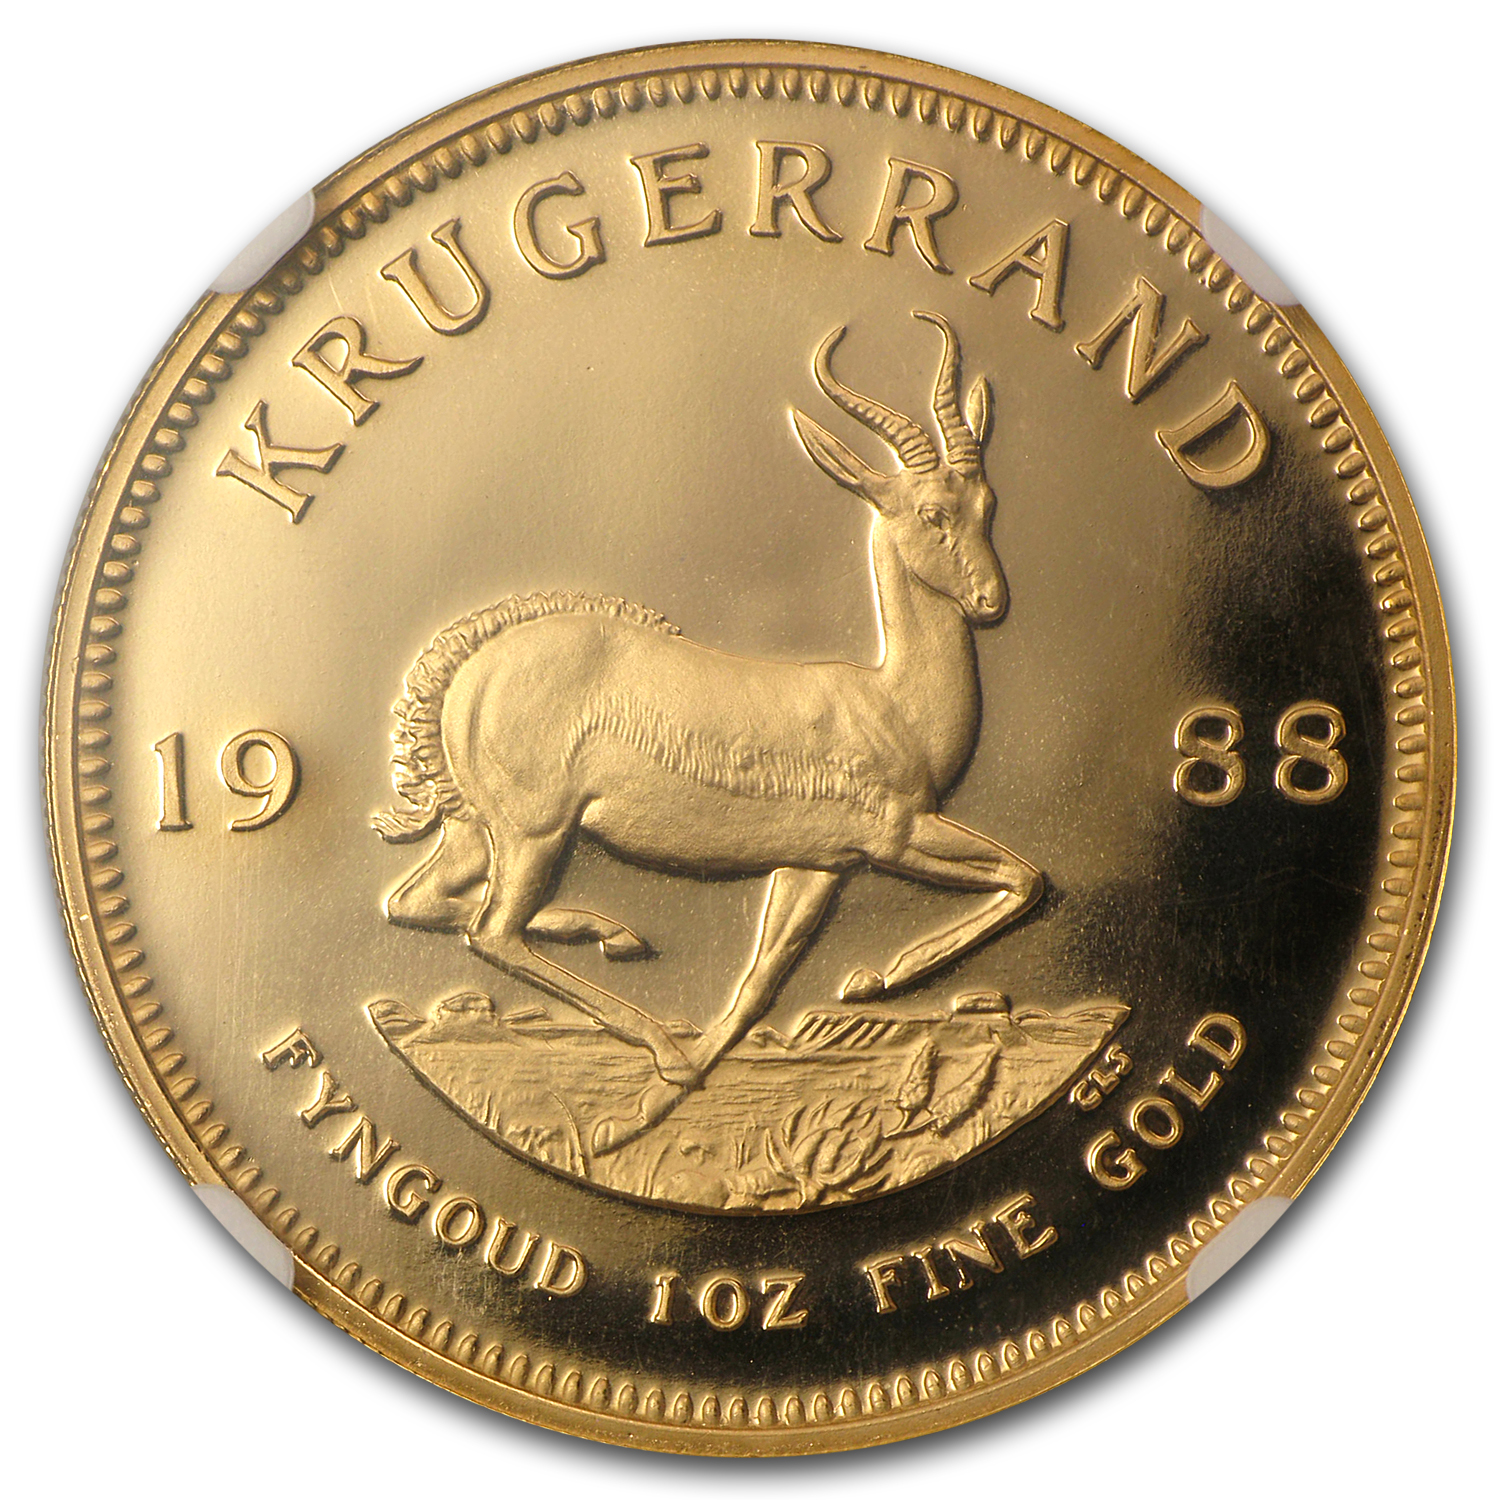 1988 1 oz Gold South African Krugerrand PF-69 NGC